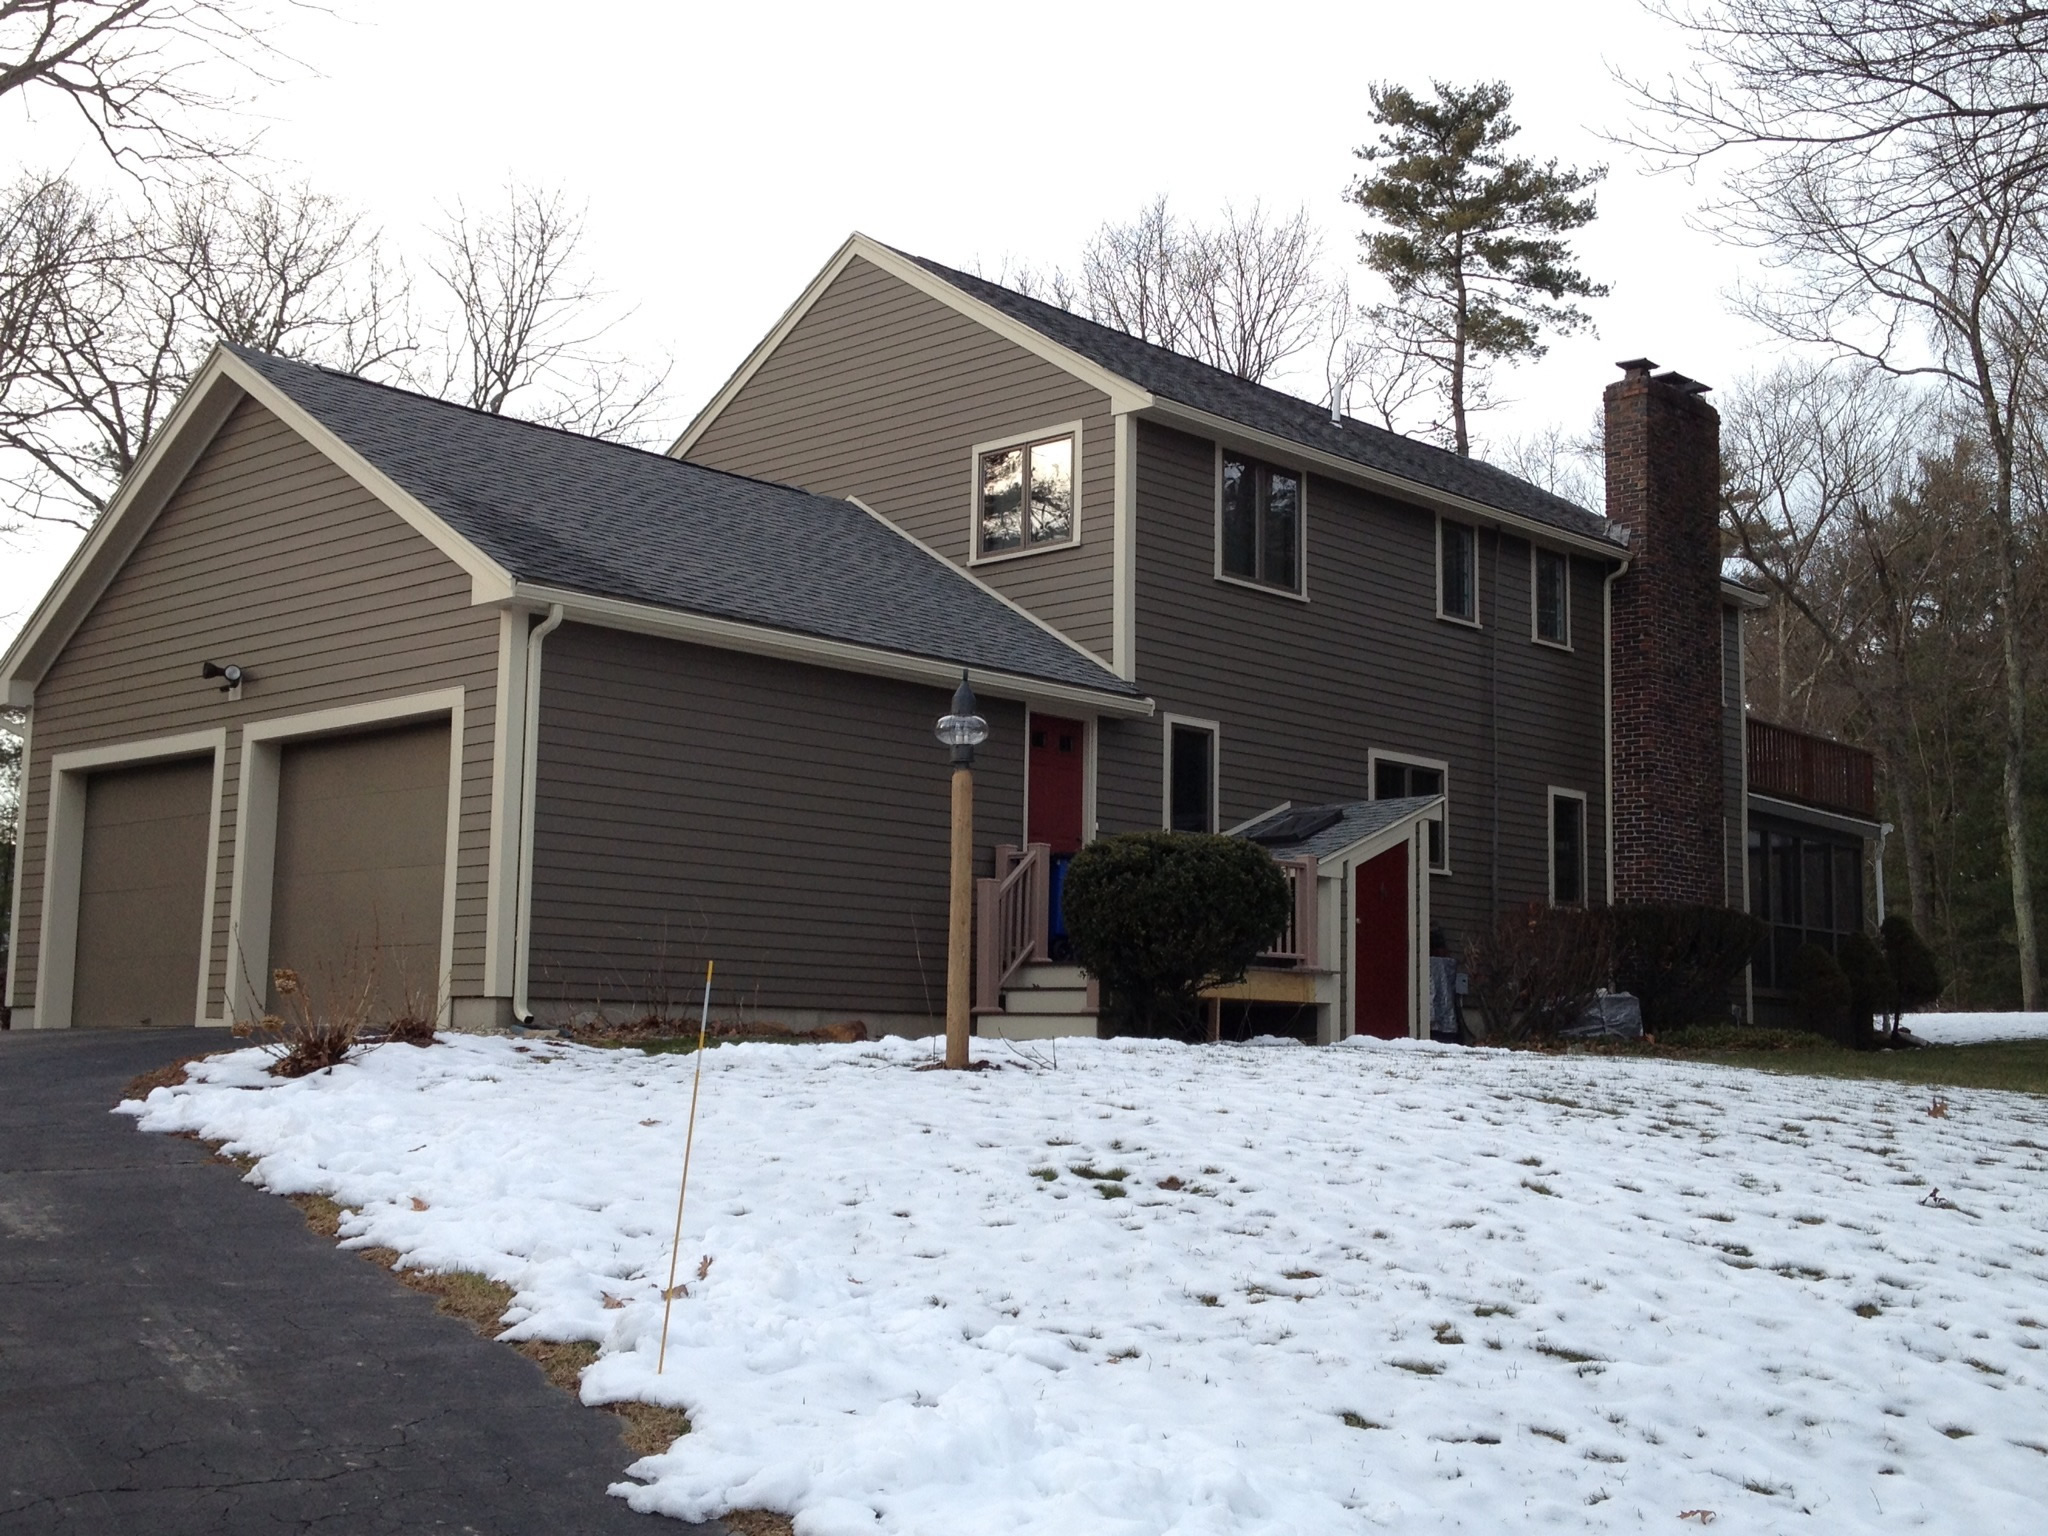 cool hardie plank siding in tan matched with white trim board and dark roof for home exterior design ideas